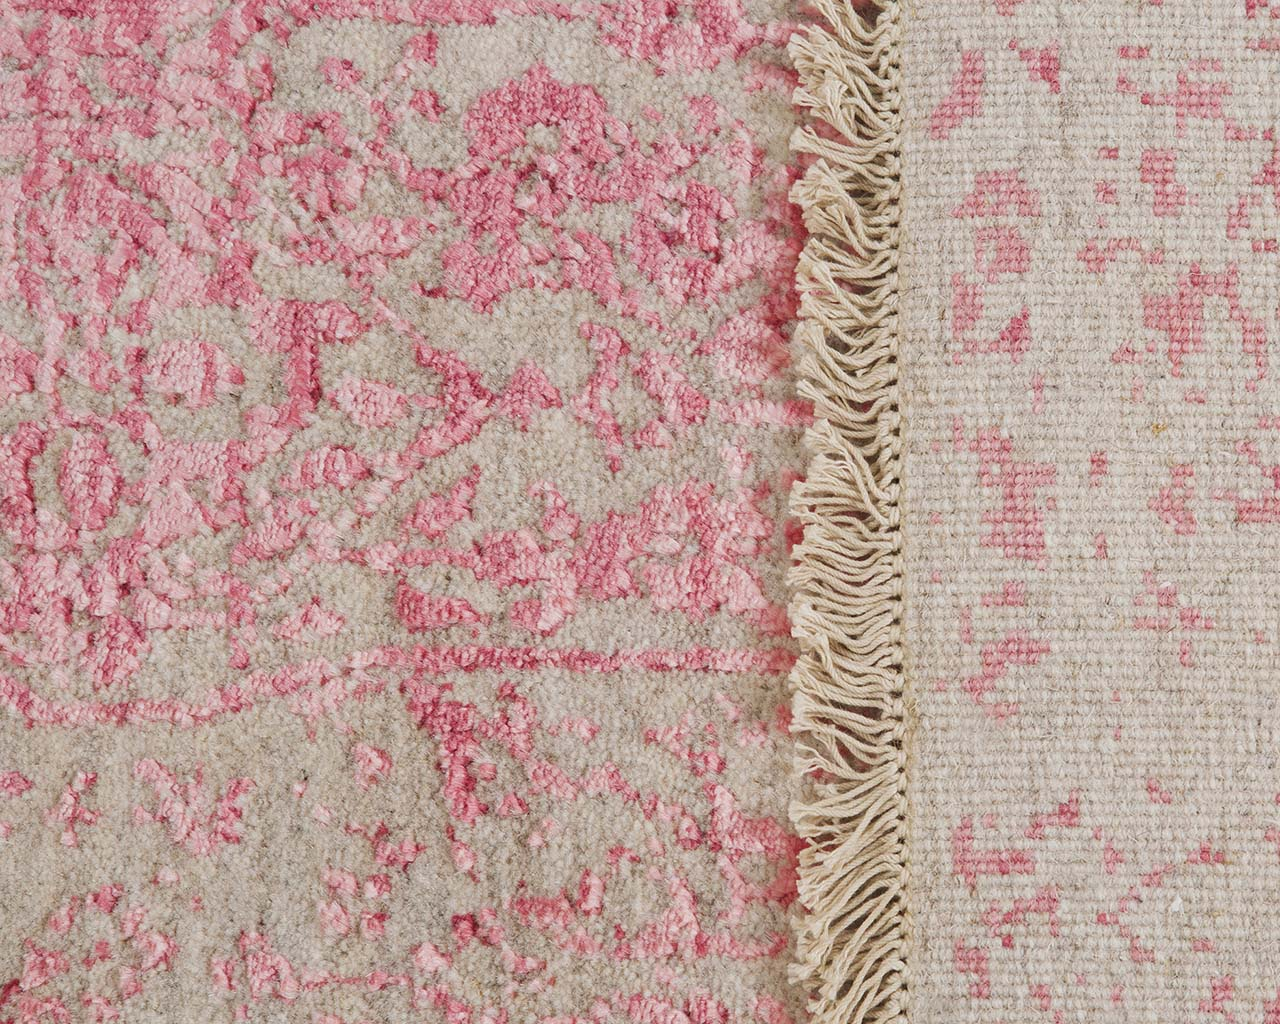 woven light pink floor carpets